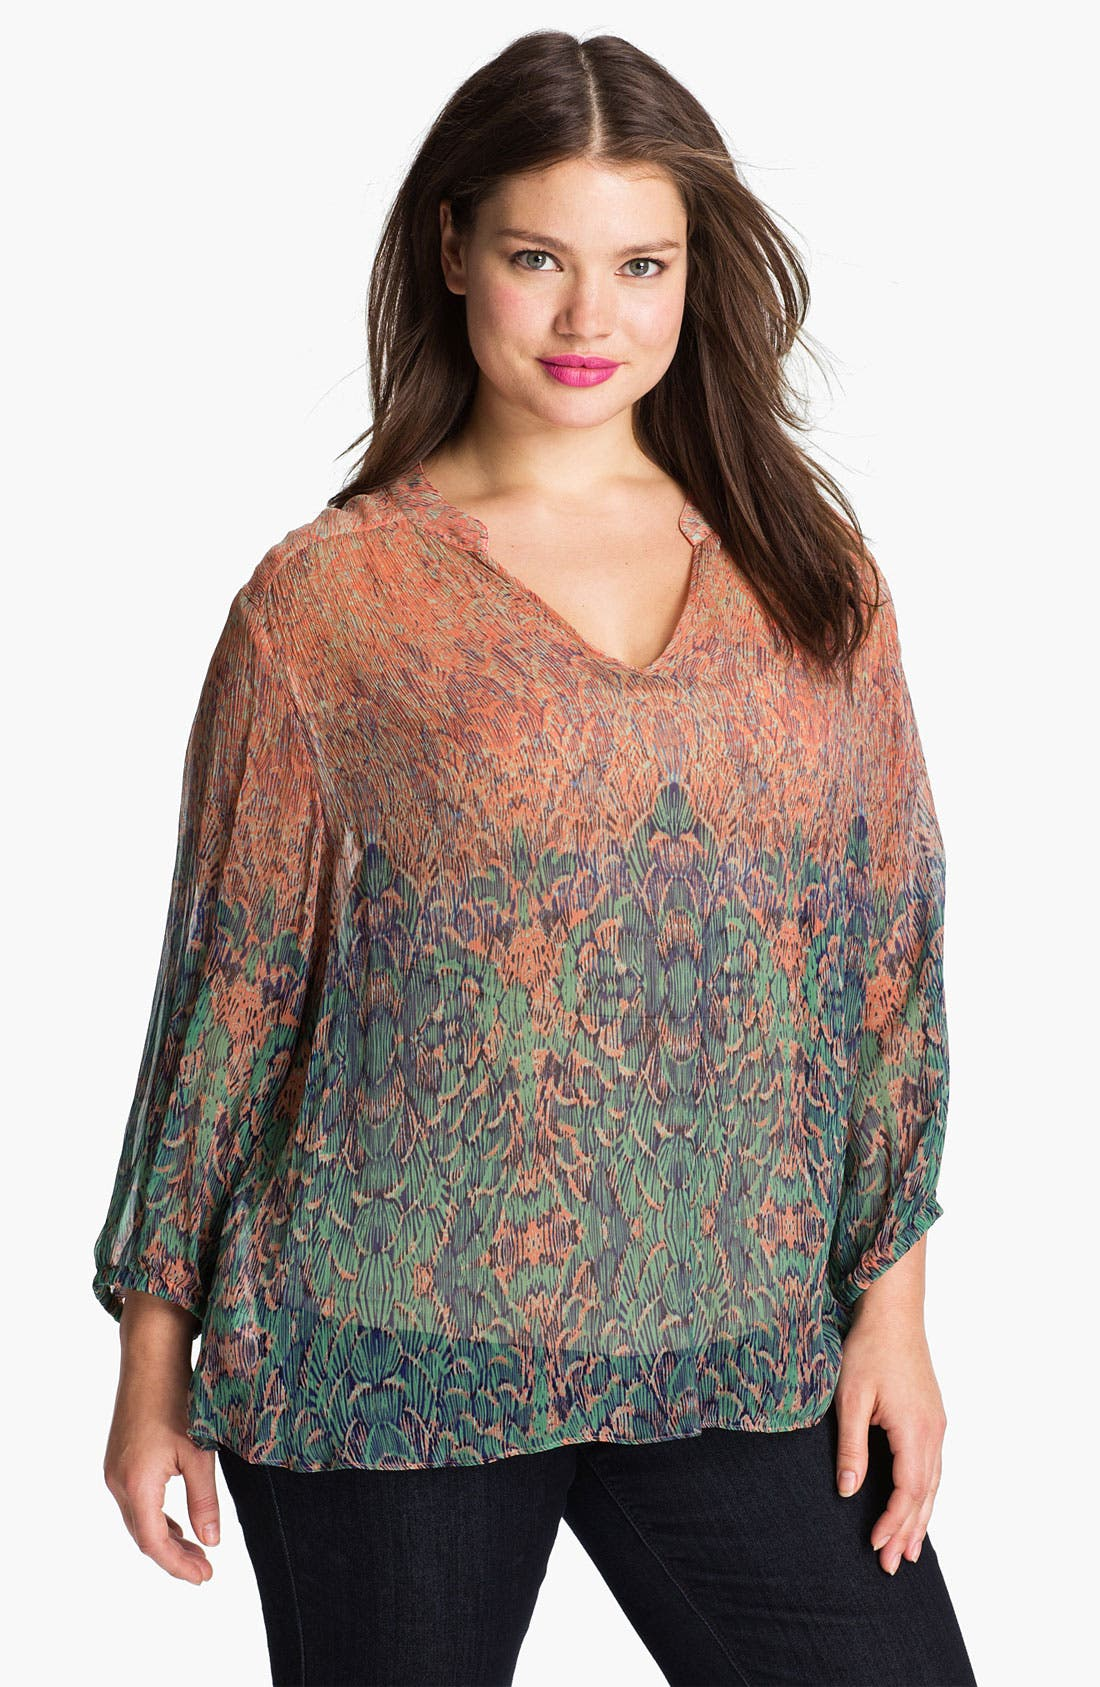 Alternate Image 1 Selected - Lucky Brand 'Sara' Sheer Deco Print Top (Plus)